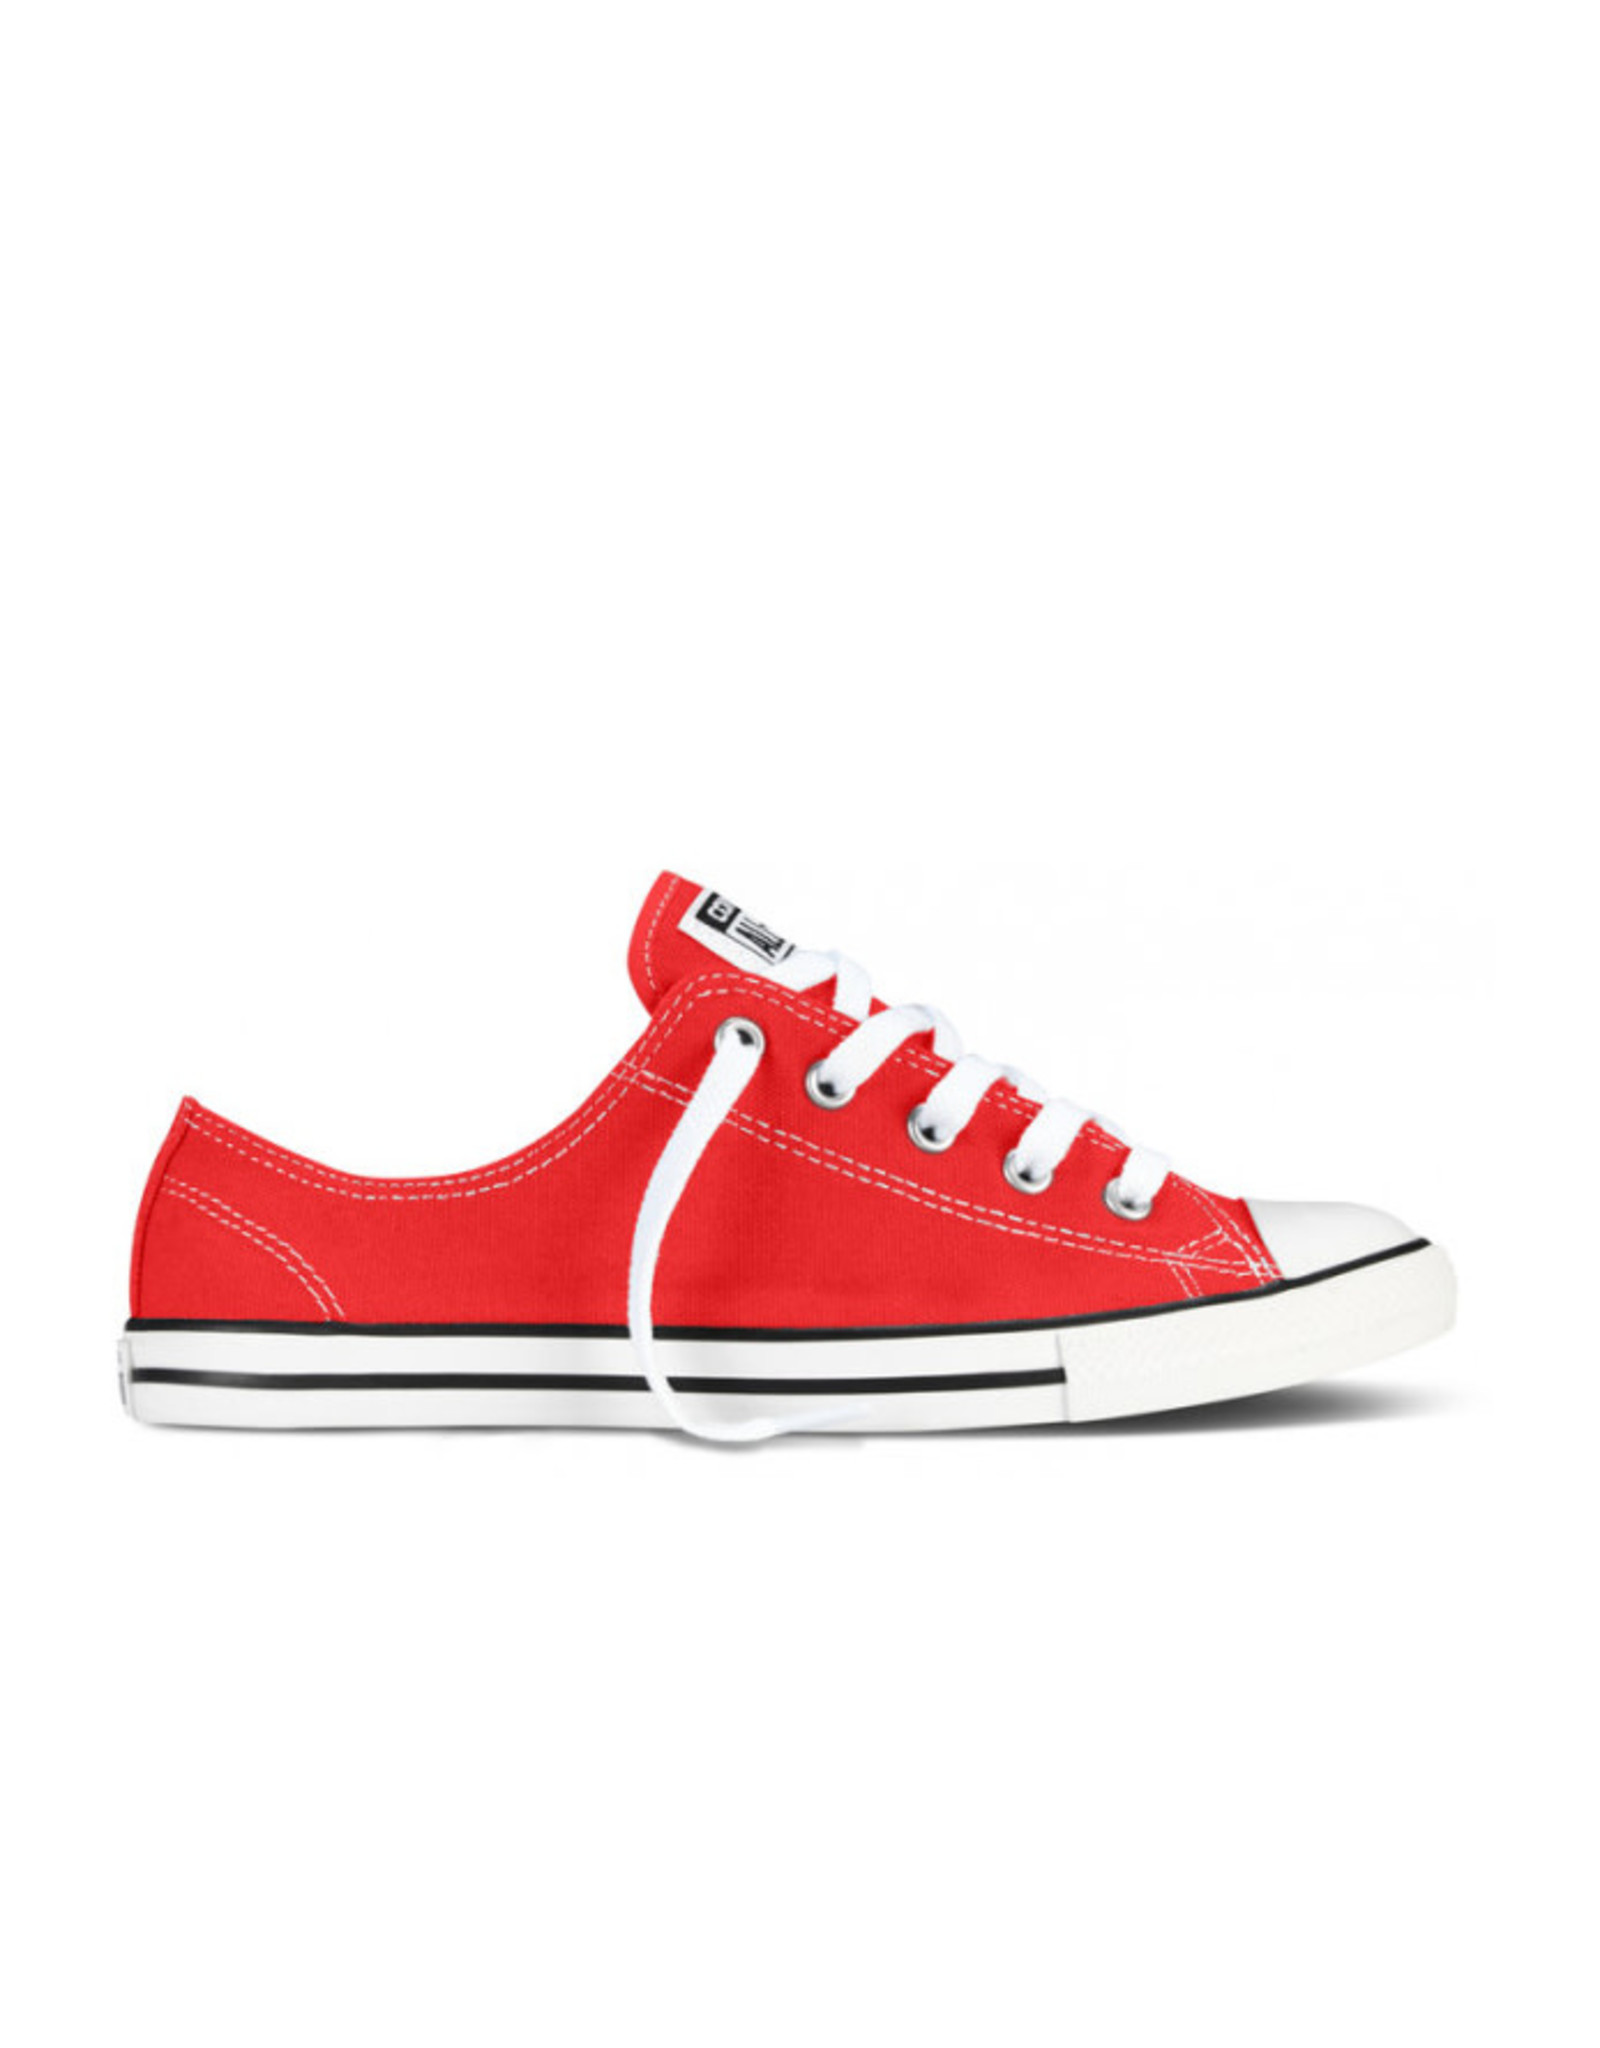 CONVERSE CHUCK TAYLOR DAINTY OX CARNIVAL C540CA-547155C